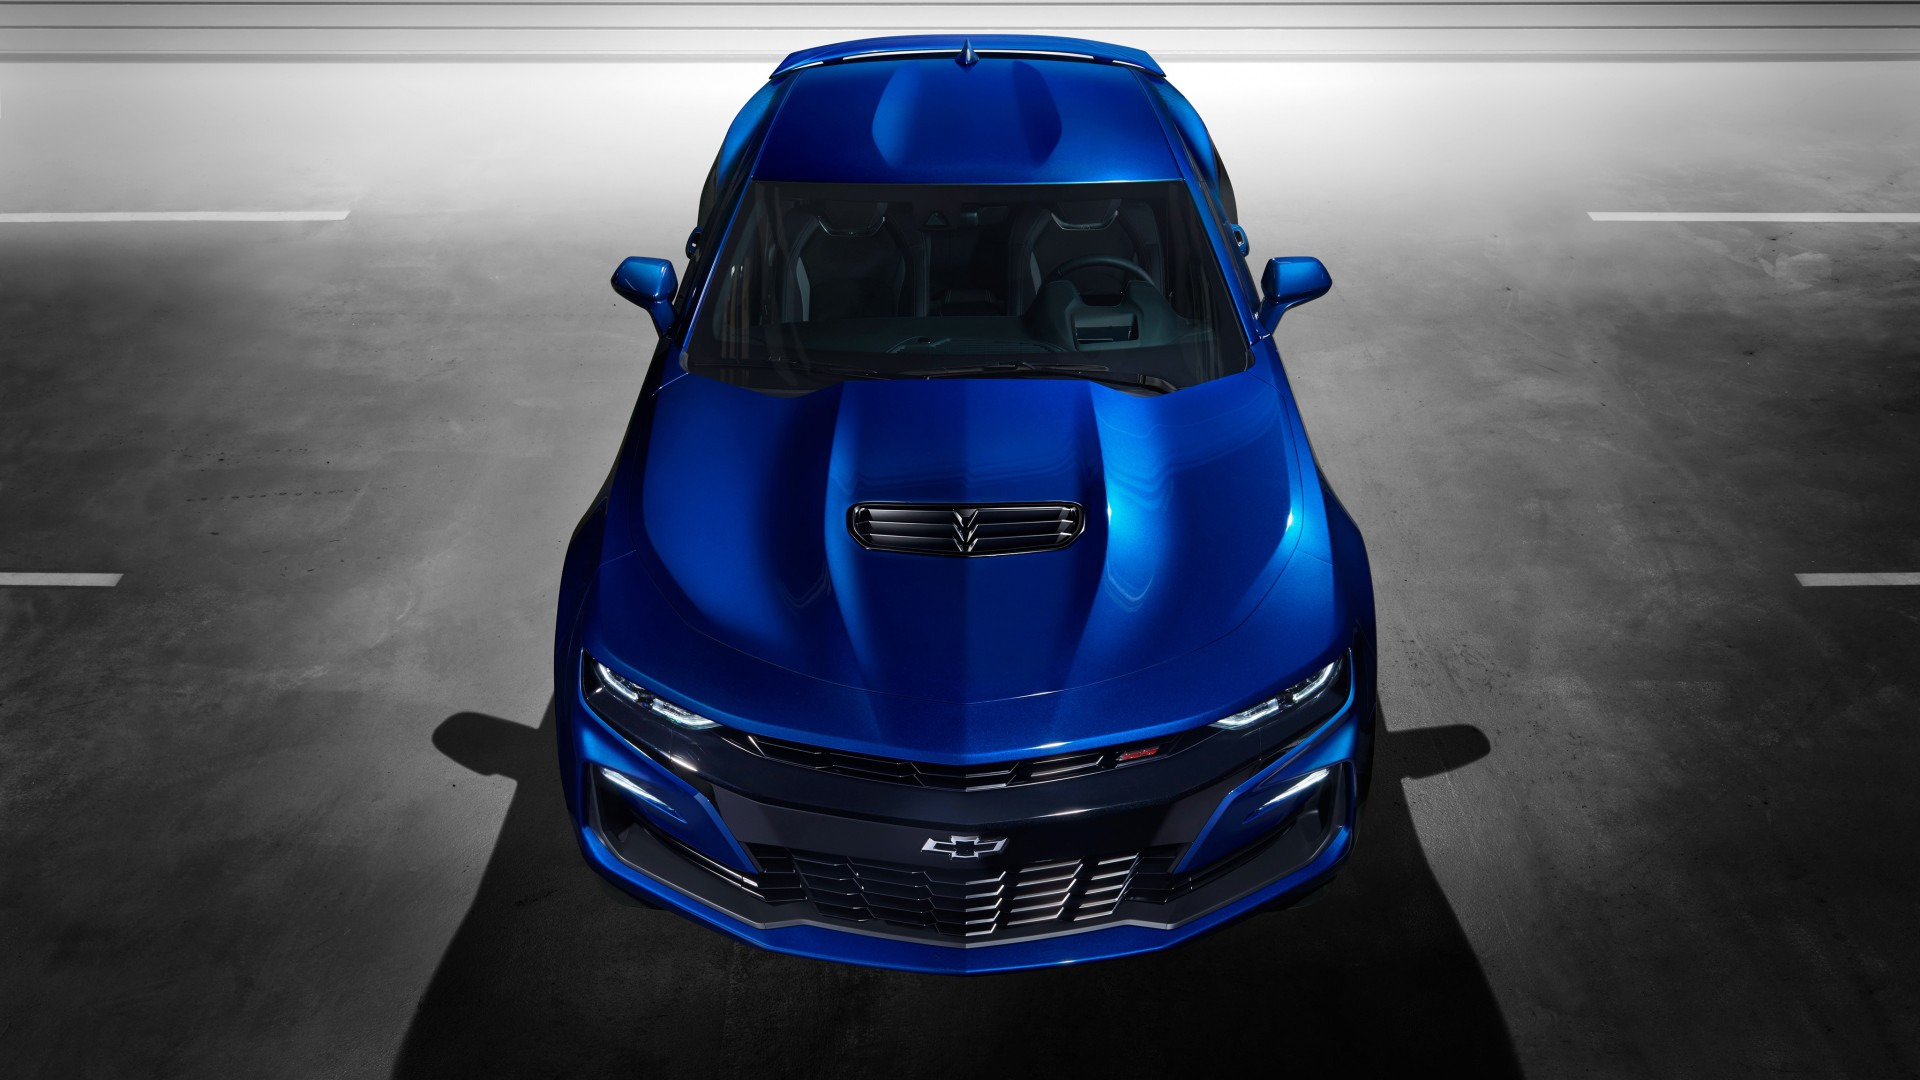 2019 Chevrolet Camaro Ss 4k Car Wallpaper Iphone 7 Plus Iphone 8